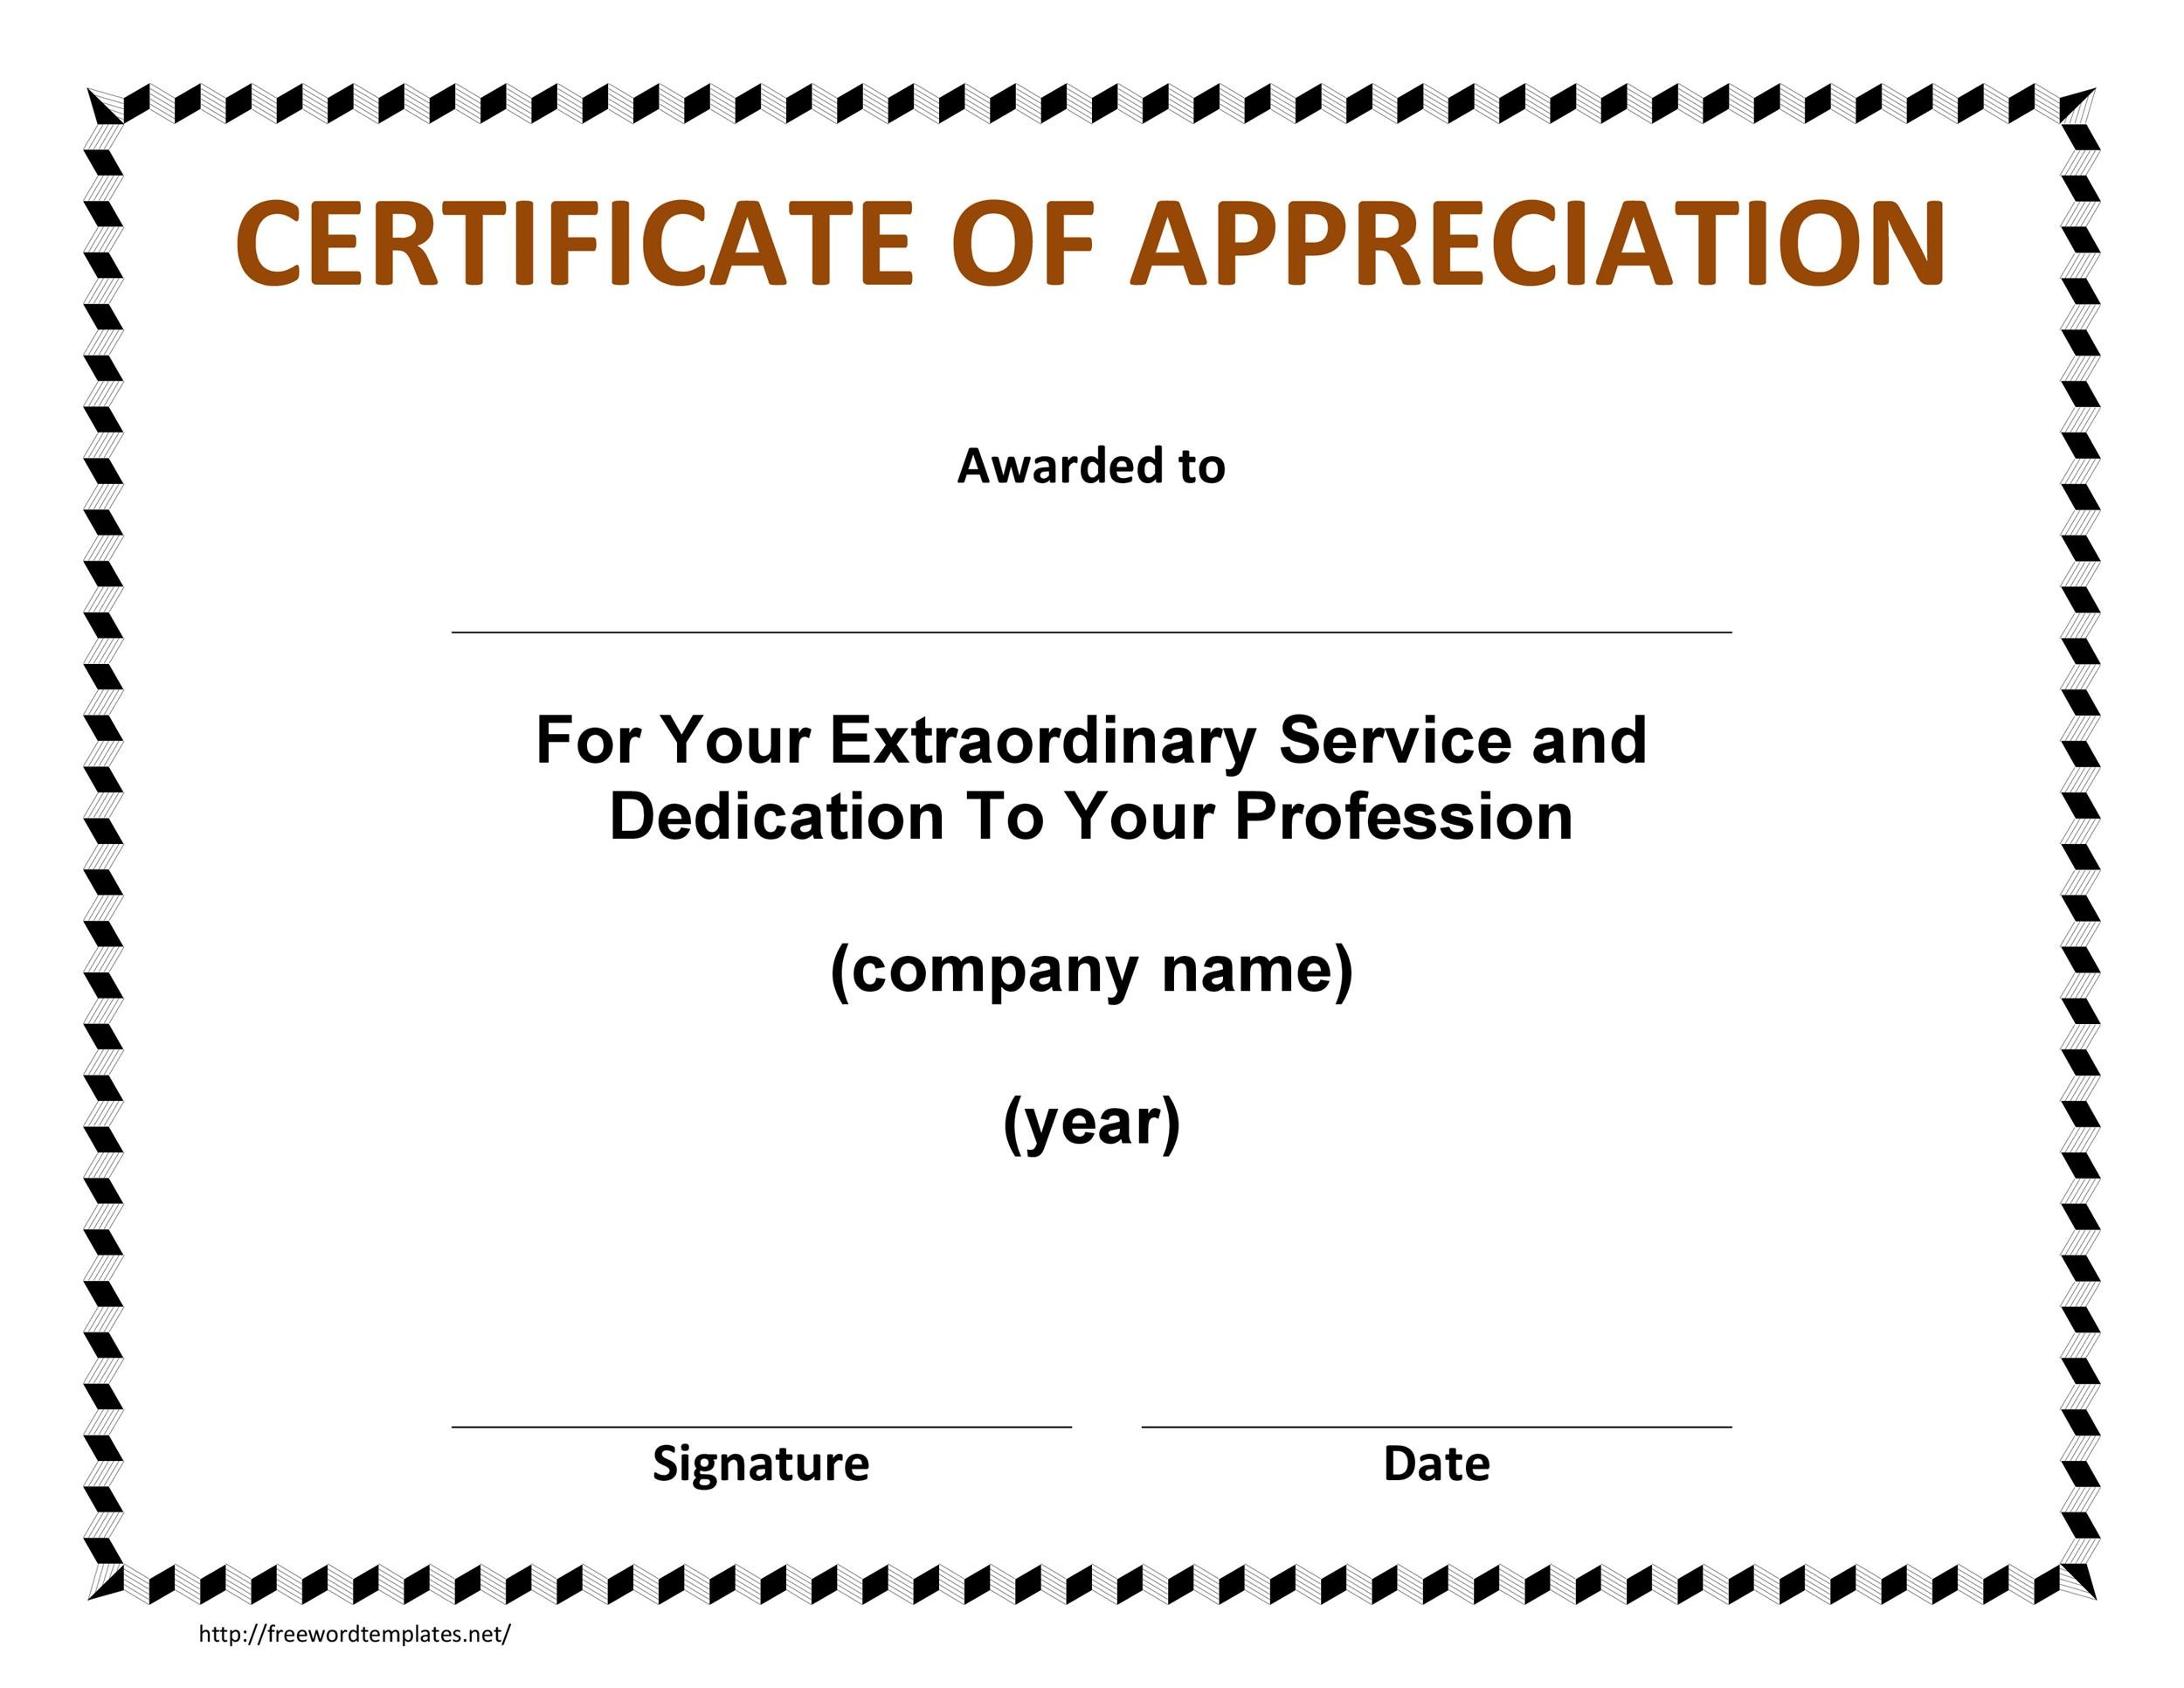 30 free certificate of appreciation templates and letters printable certificate of appreciation 04 yadclub Image collections